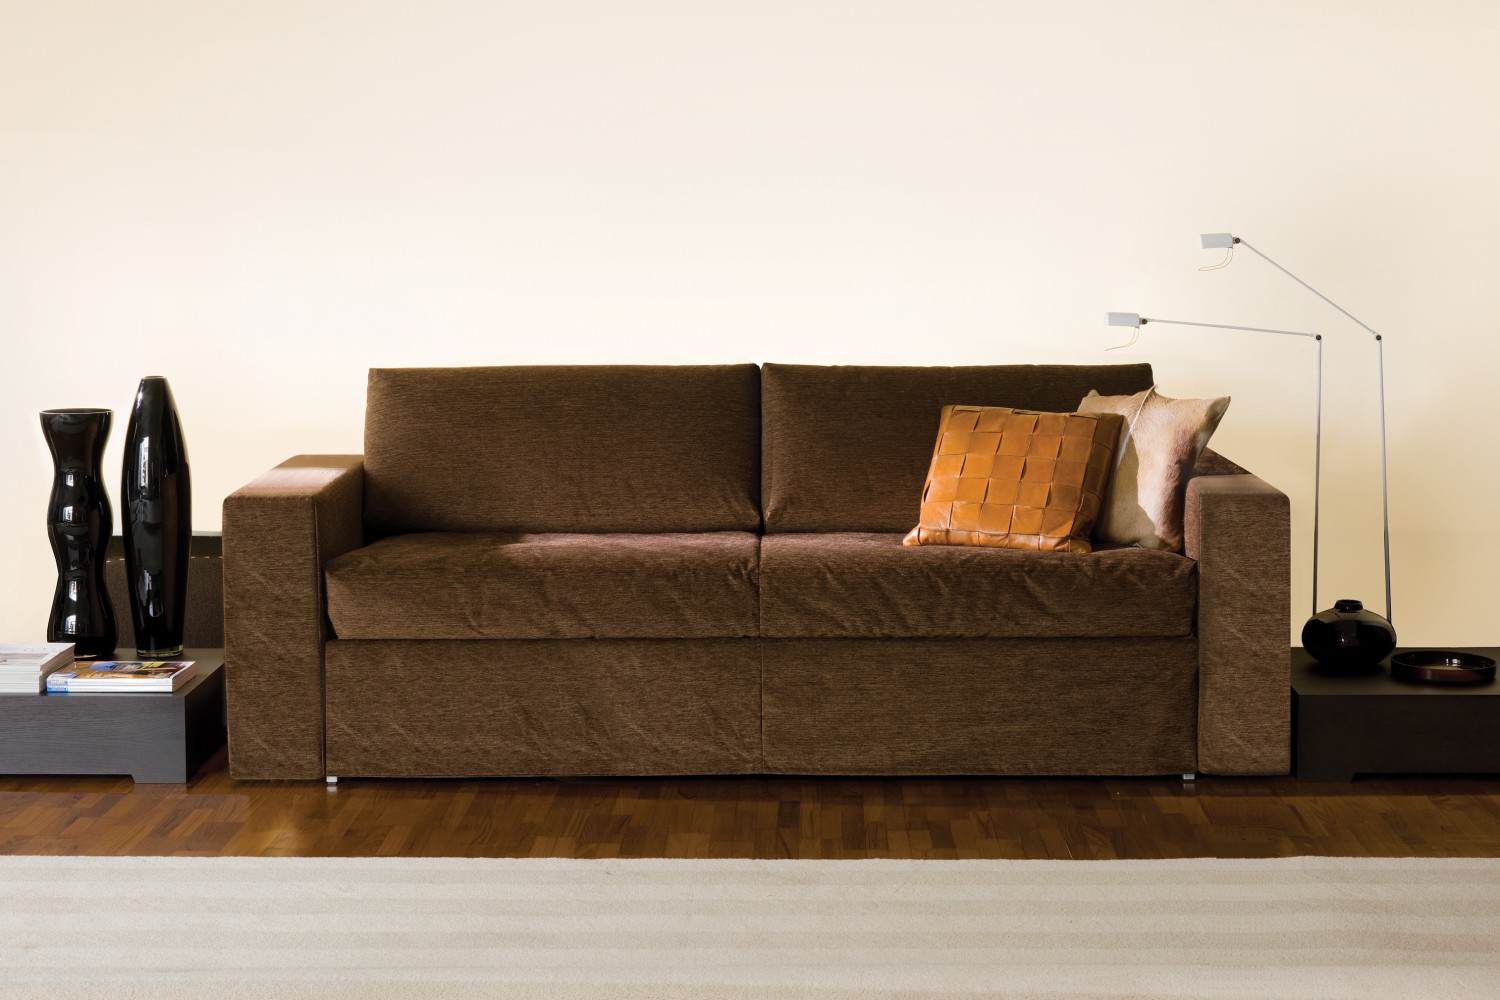 Letto A Castello Twins.Frank Sofa Bed With Extra Mattress